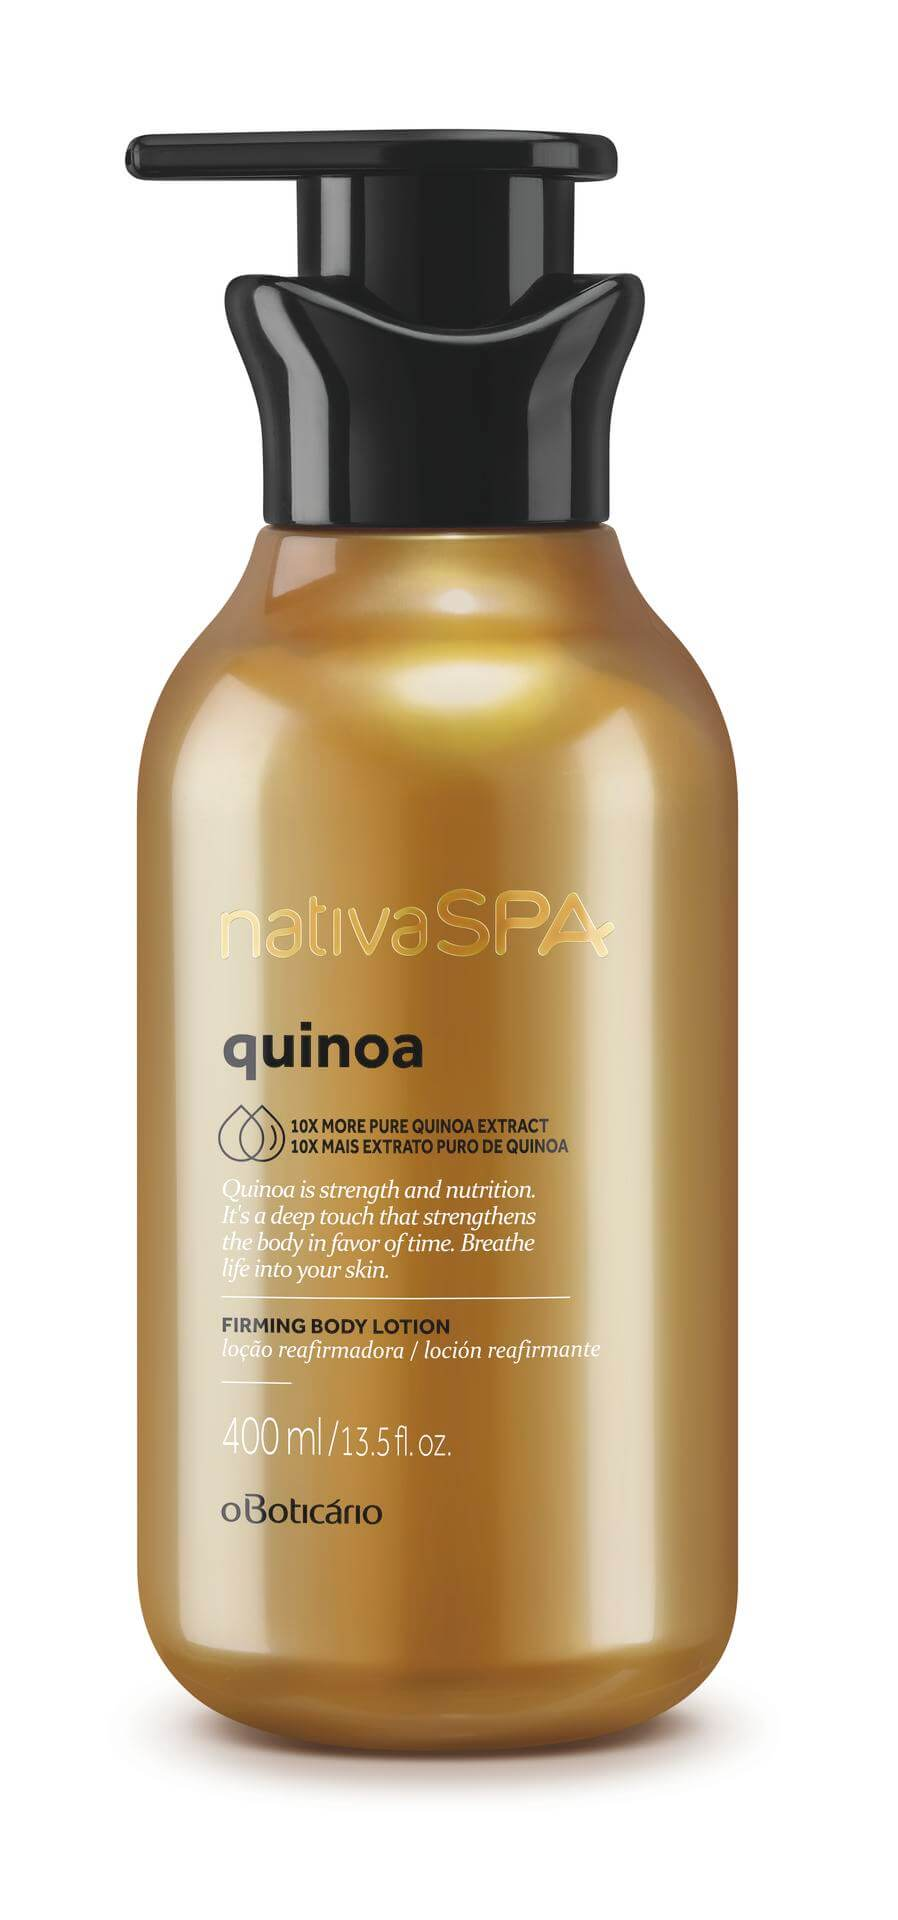 quinoa-moisturizing-body-lotion-400